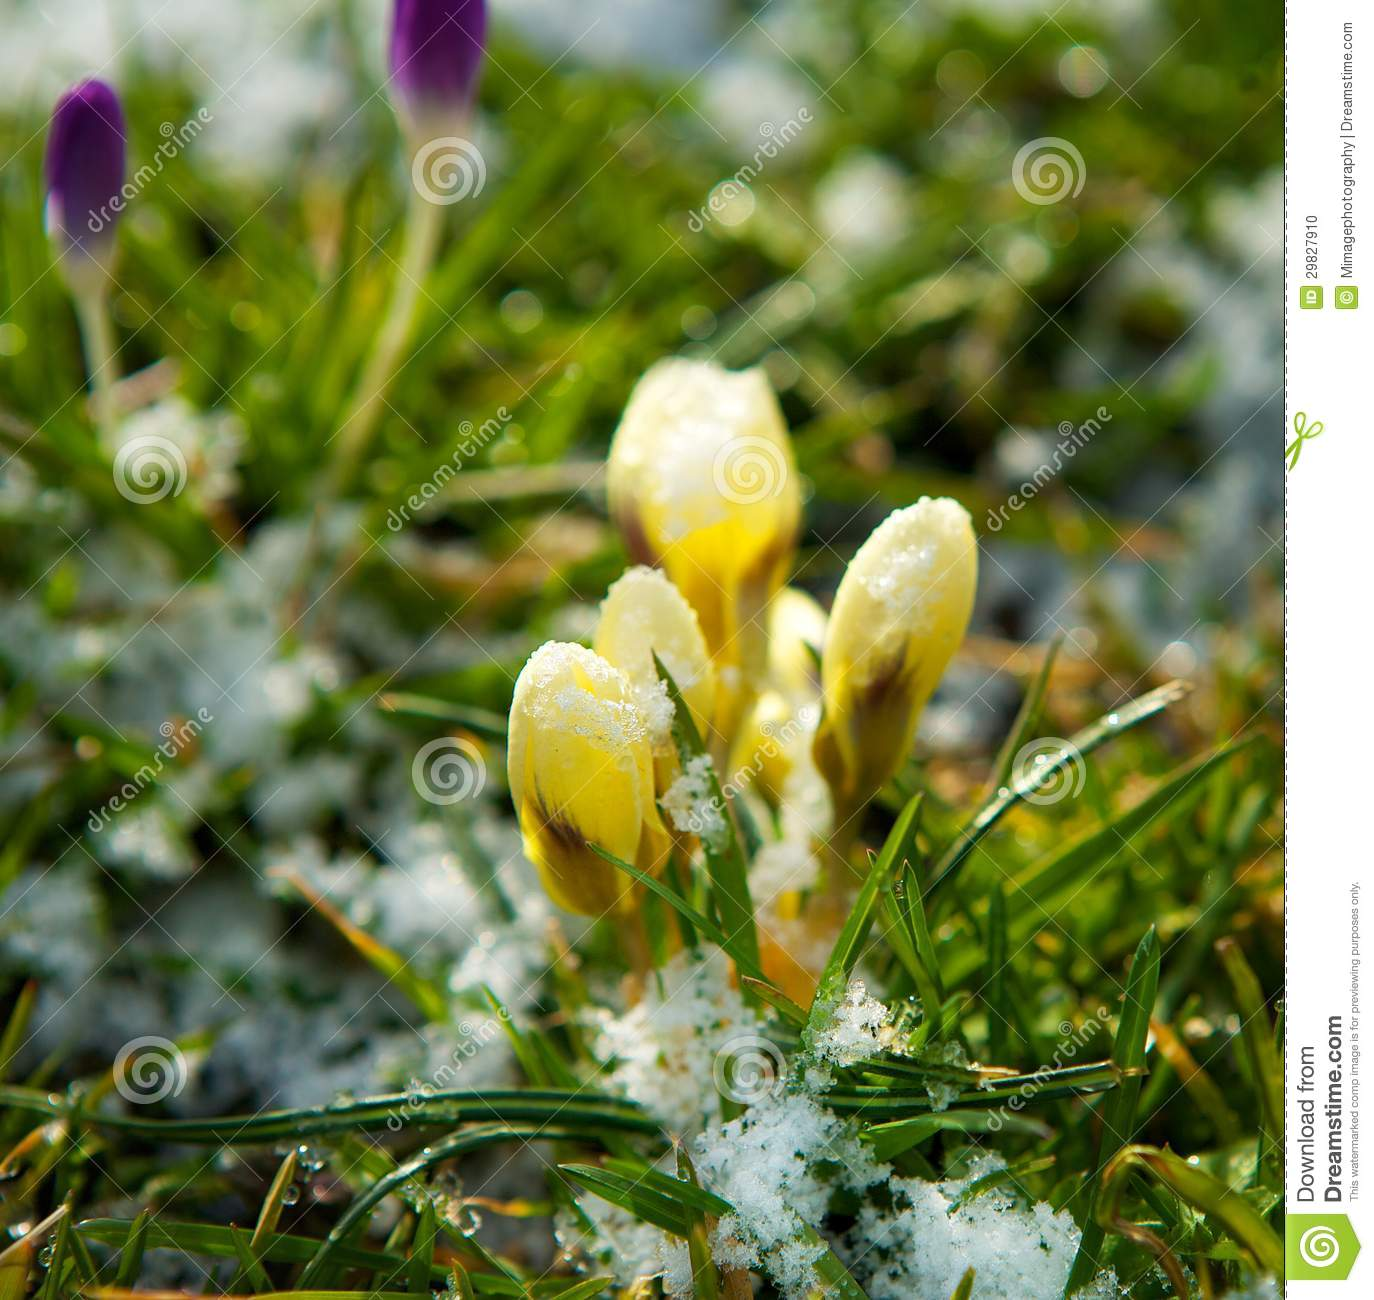 Spring Flowers Growing In Snow Stock Photo Image Of Floral Grass